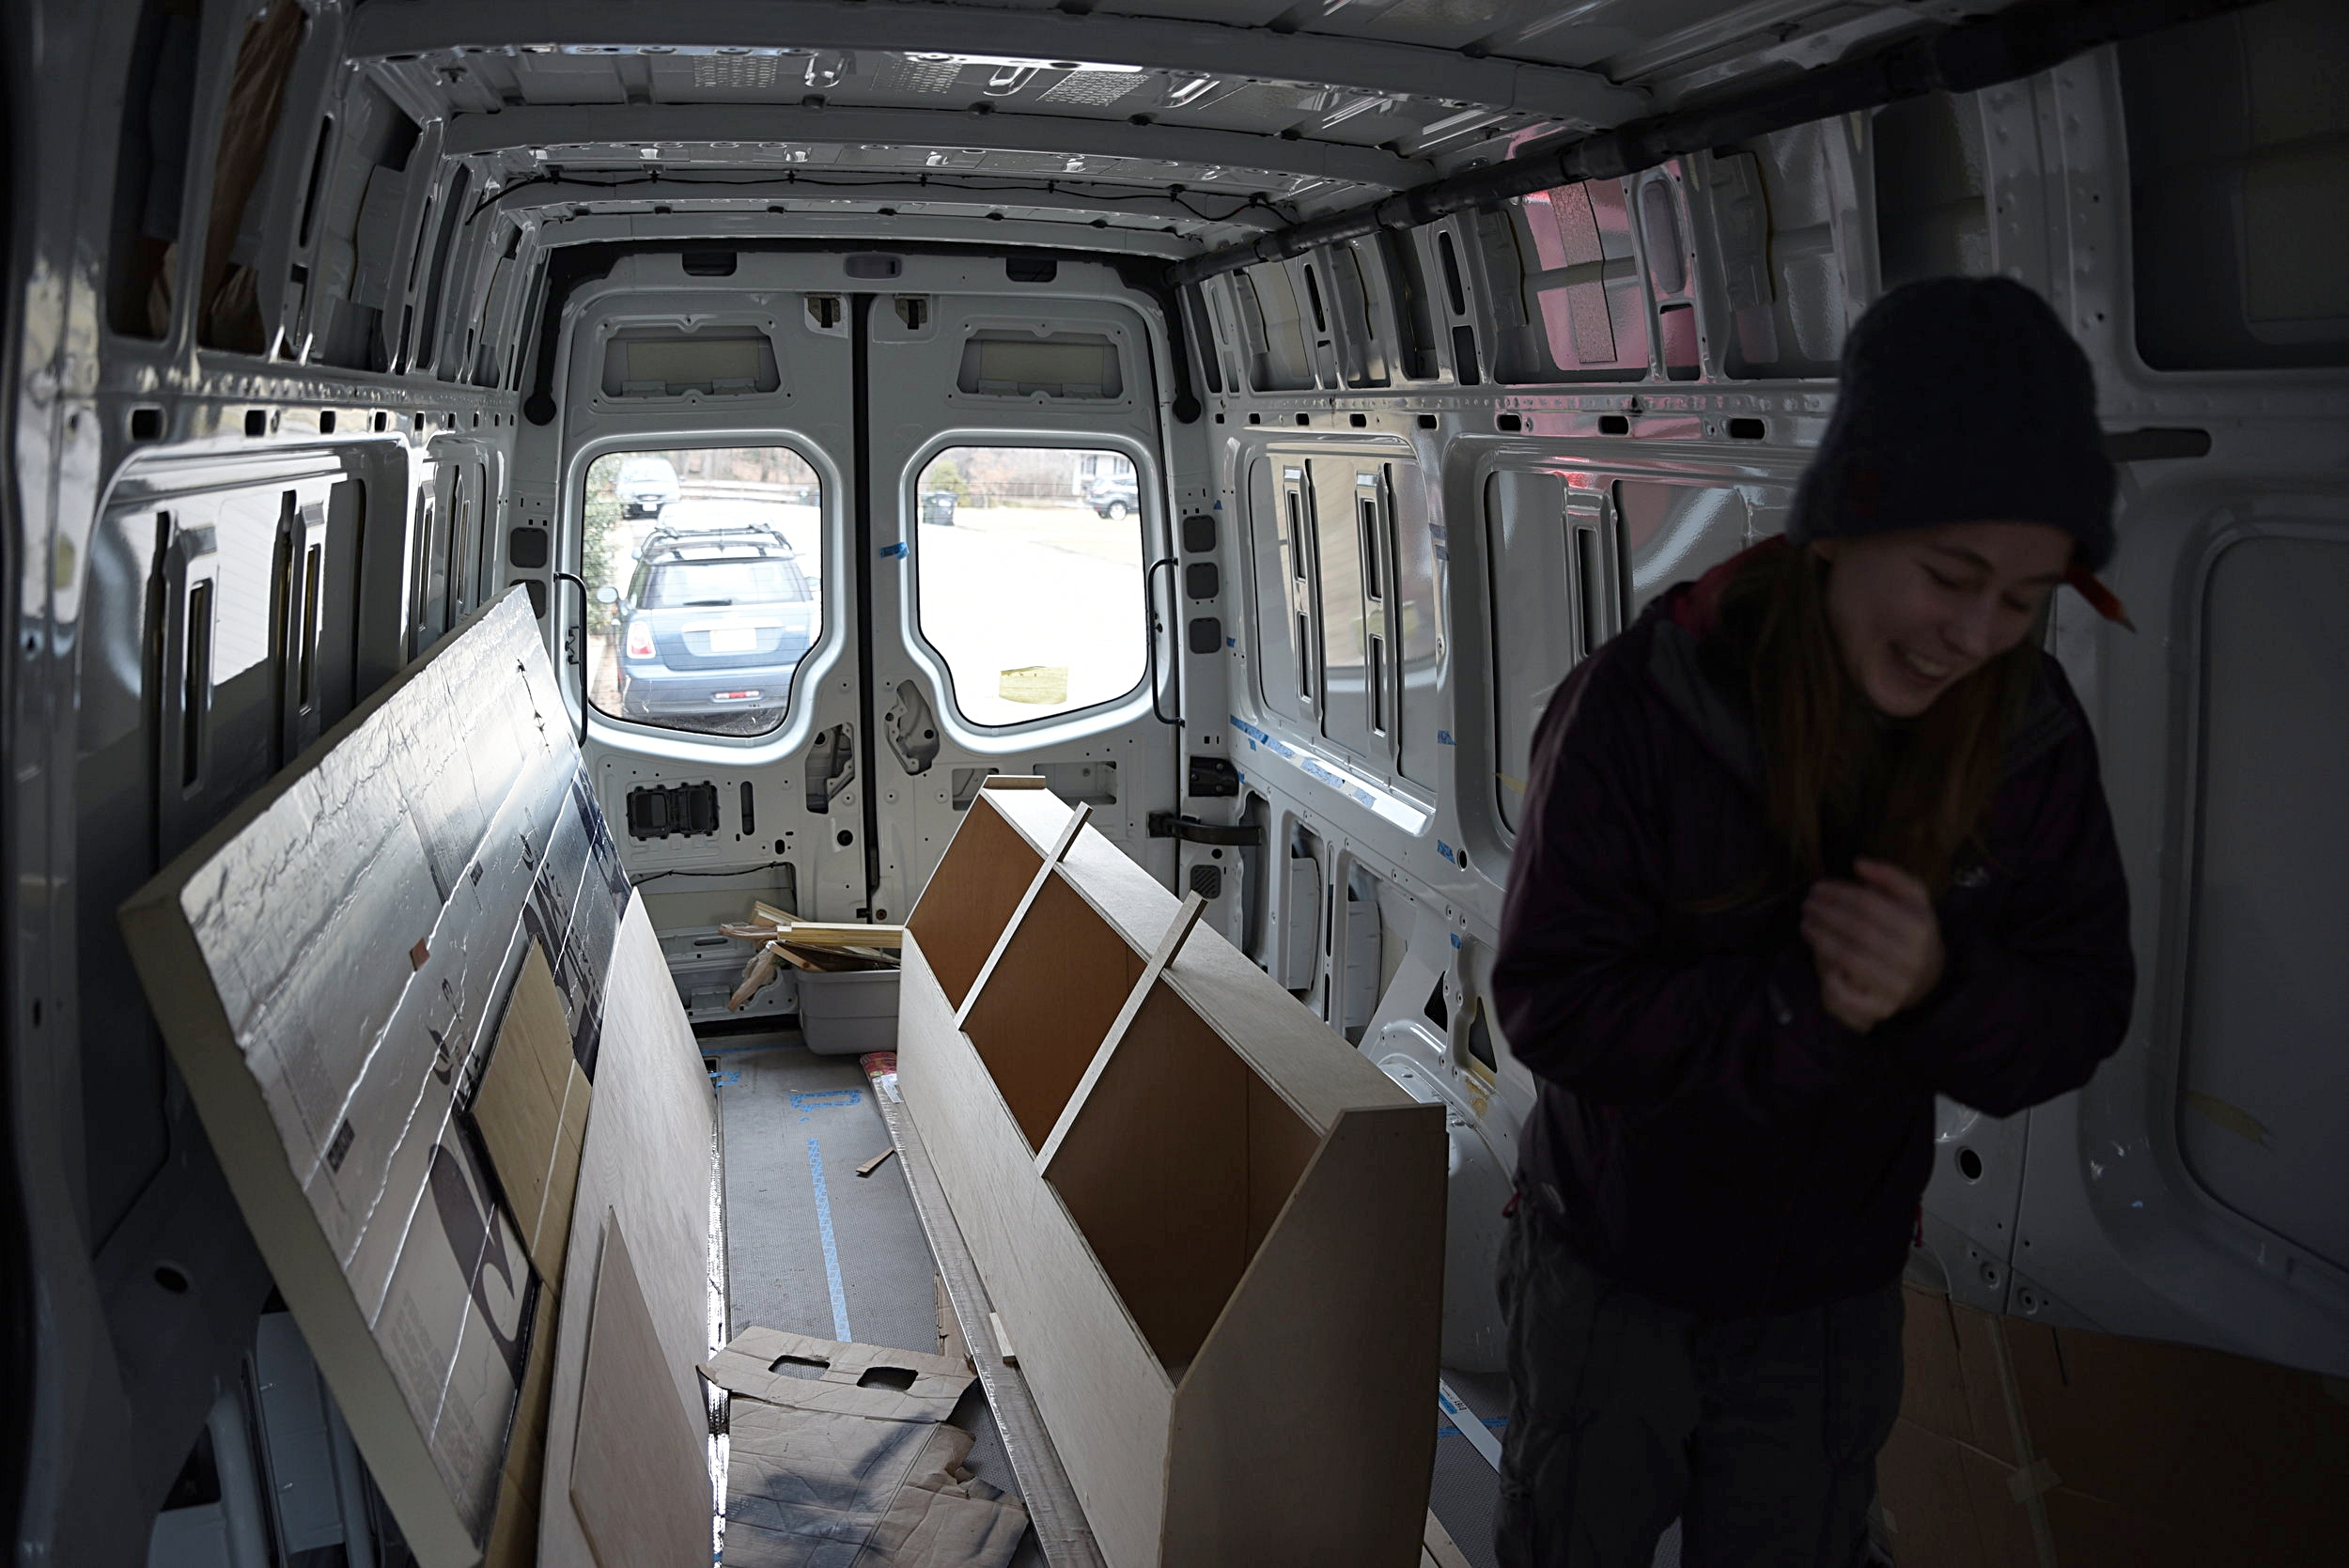 A bit of humor is required when building a van home.